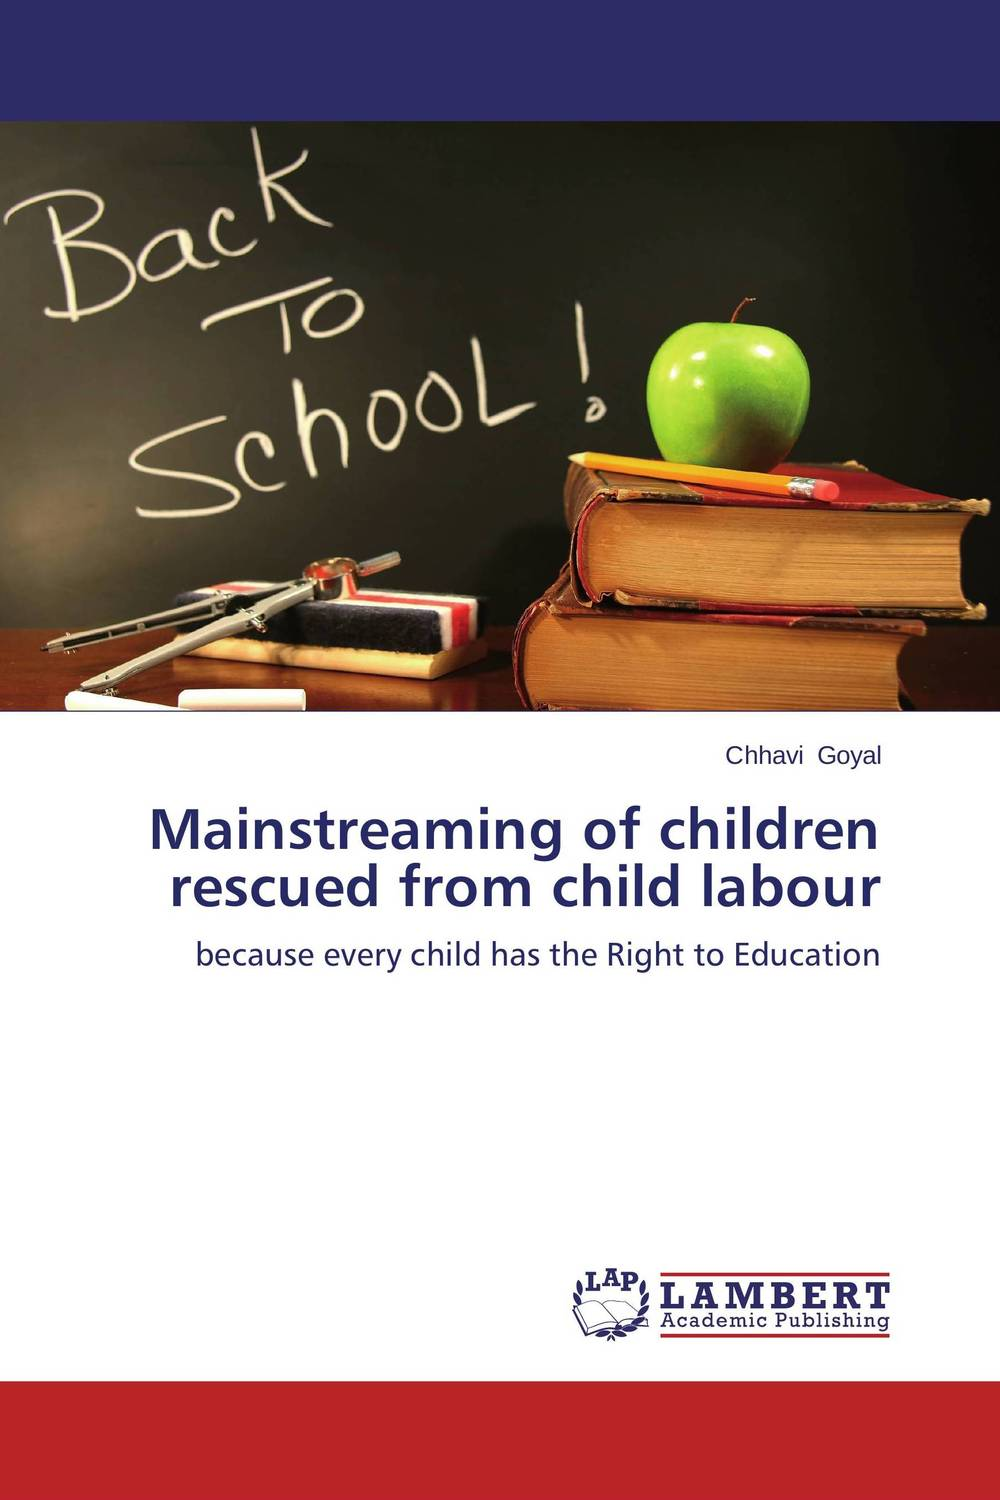 Mainstreaming of children rescued from child labour